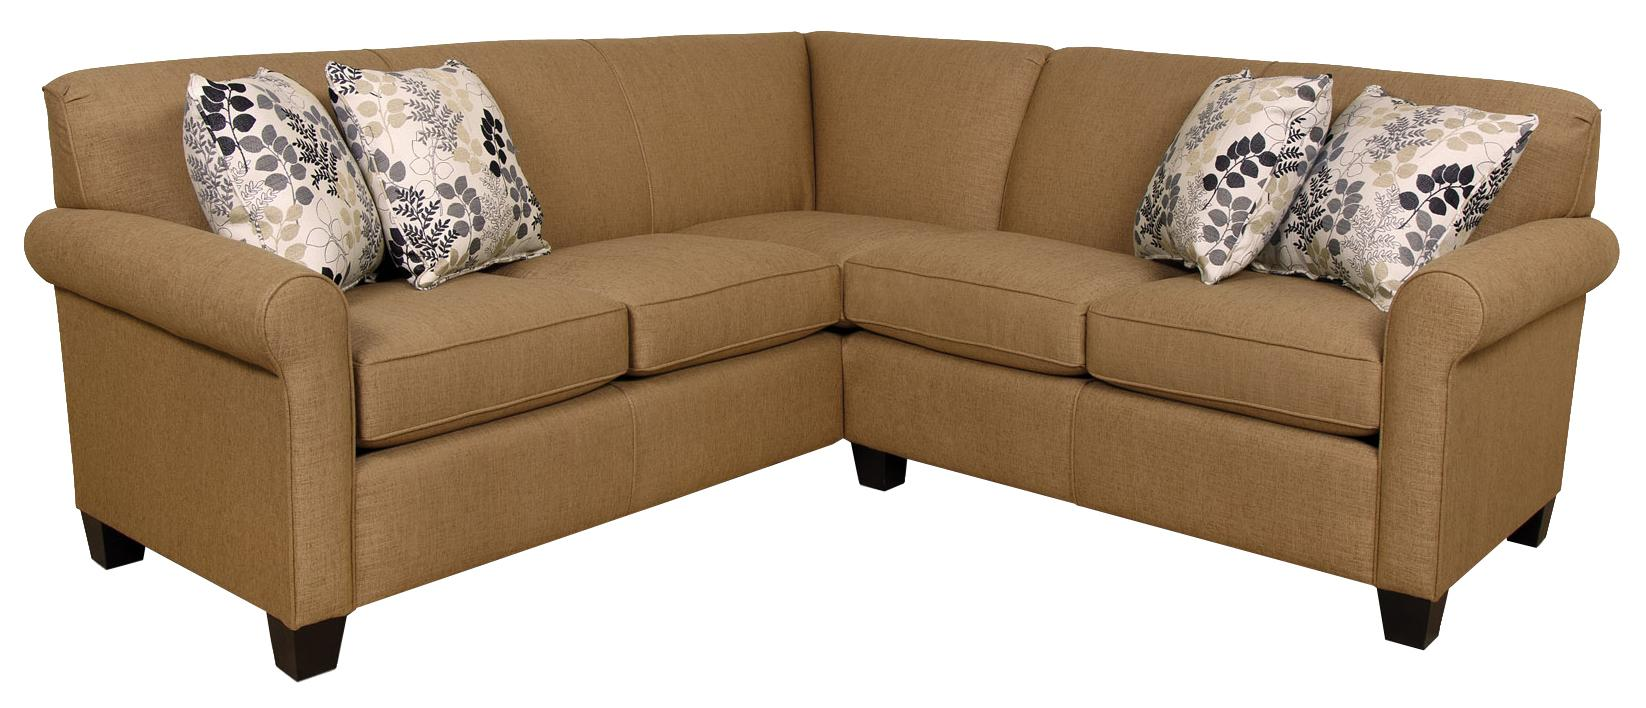 England Angie Small Corner Sectional Sofa Dunk Amp Bright